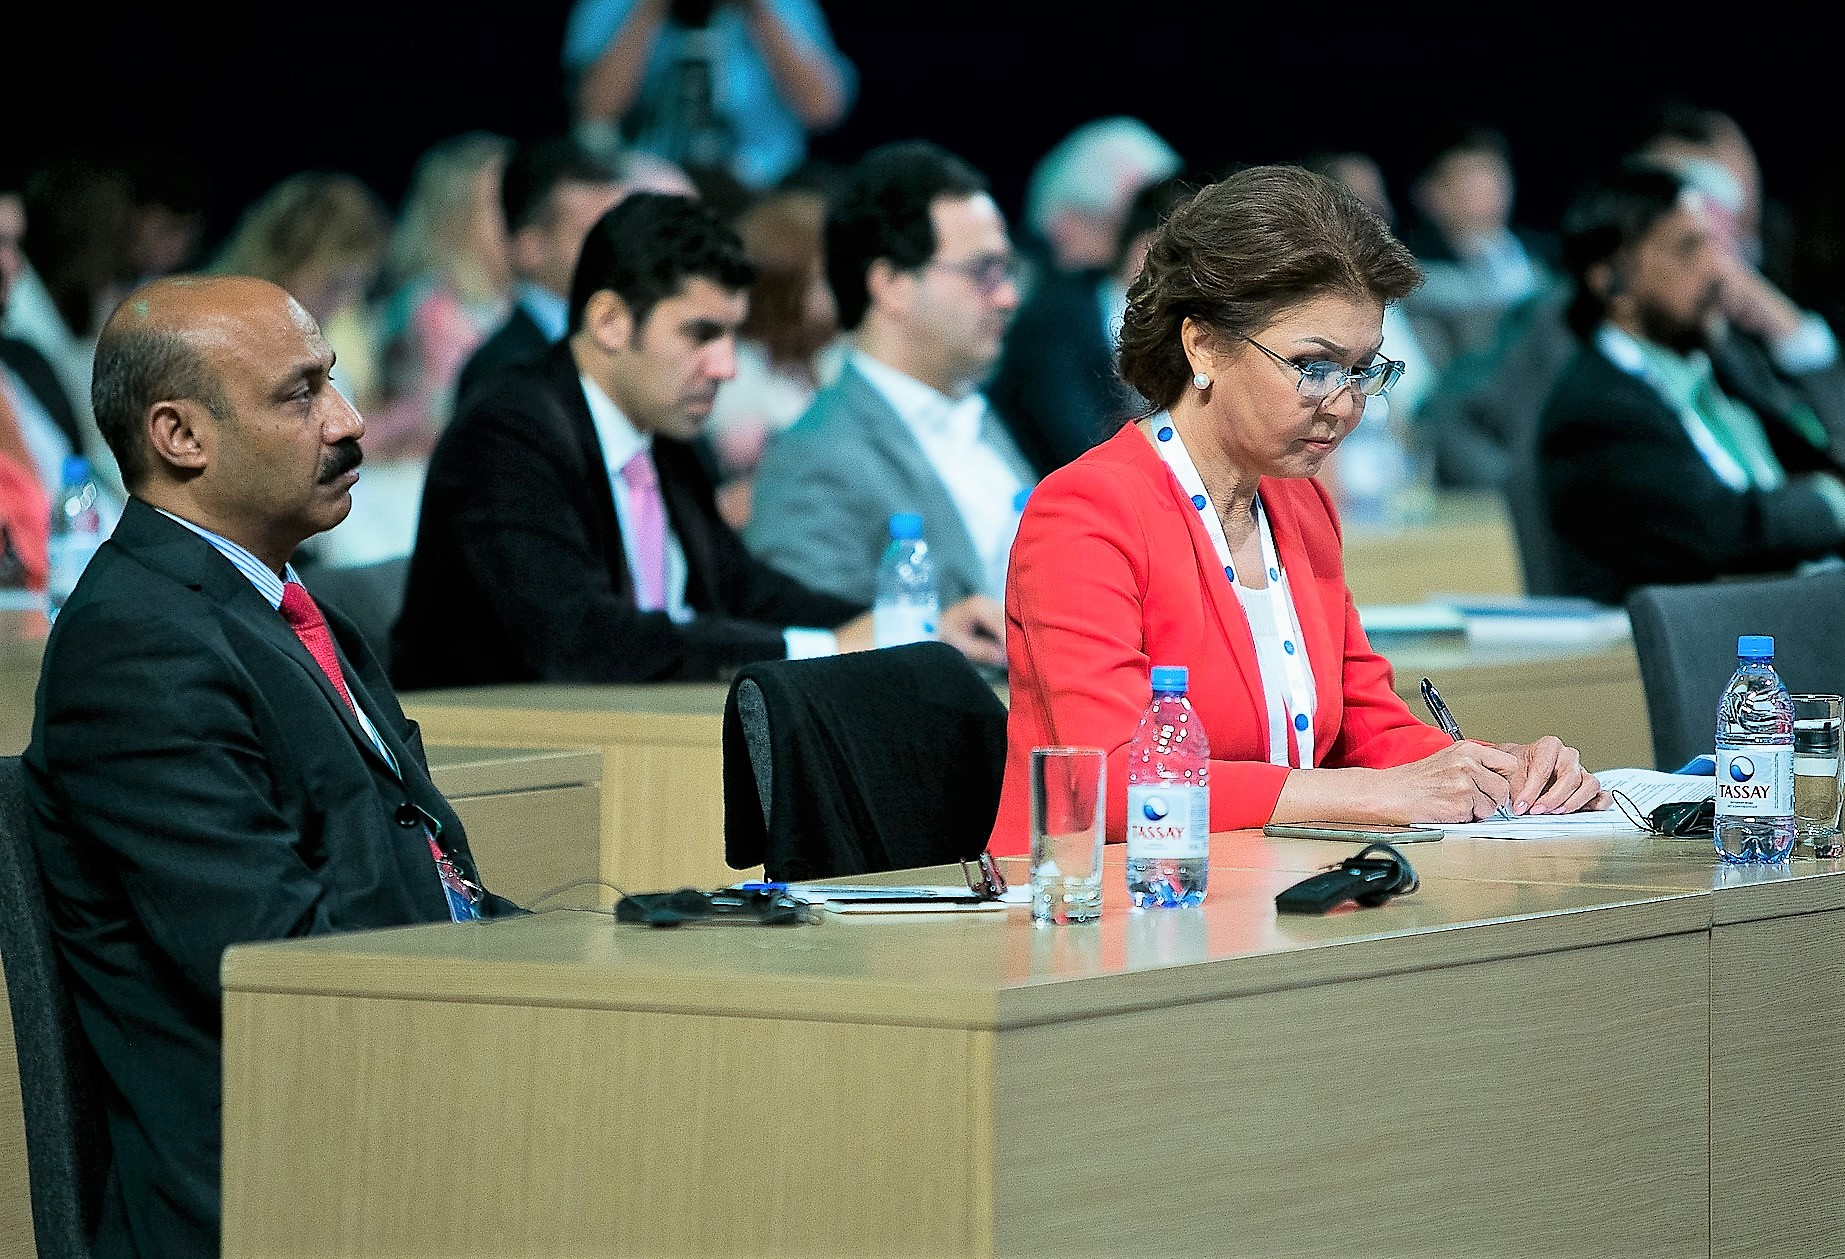 Dr. Dariga Nazarbayeva, eldest daughter of H.E. President Nursultan Nazarbayev and Chairperson of the Eurasian Media Forum, and Dr Shahid Qureshi, Editor in Chief of The London Post and Media Group in Astana Kazakhstan 22 June 2017. (Photo by Eurasian Media Forum 2017)